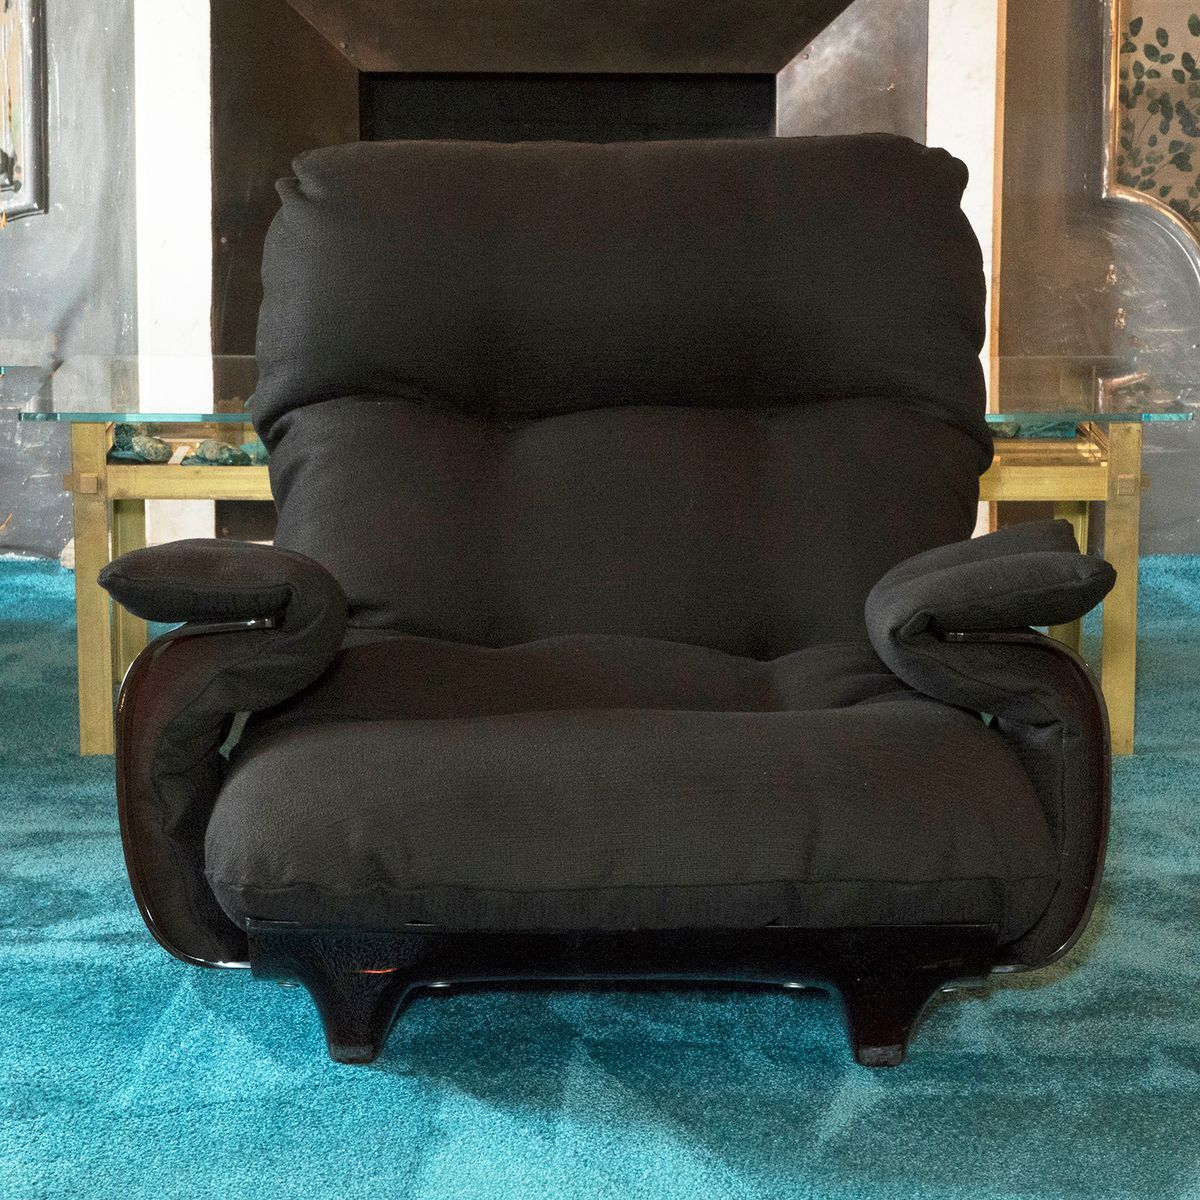 Marsala Lounge Chairs by Ligne Roset, 1970s, Set of 2 for sale at ...